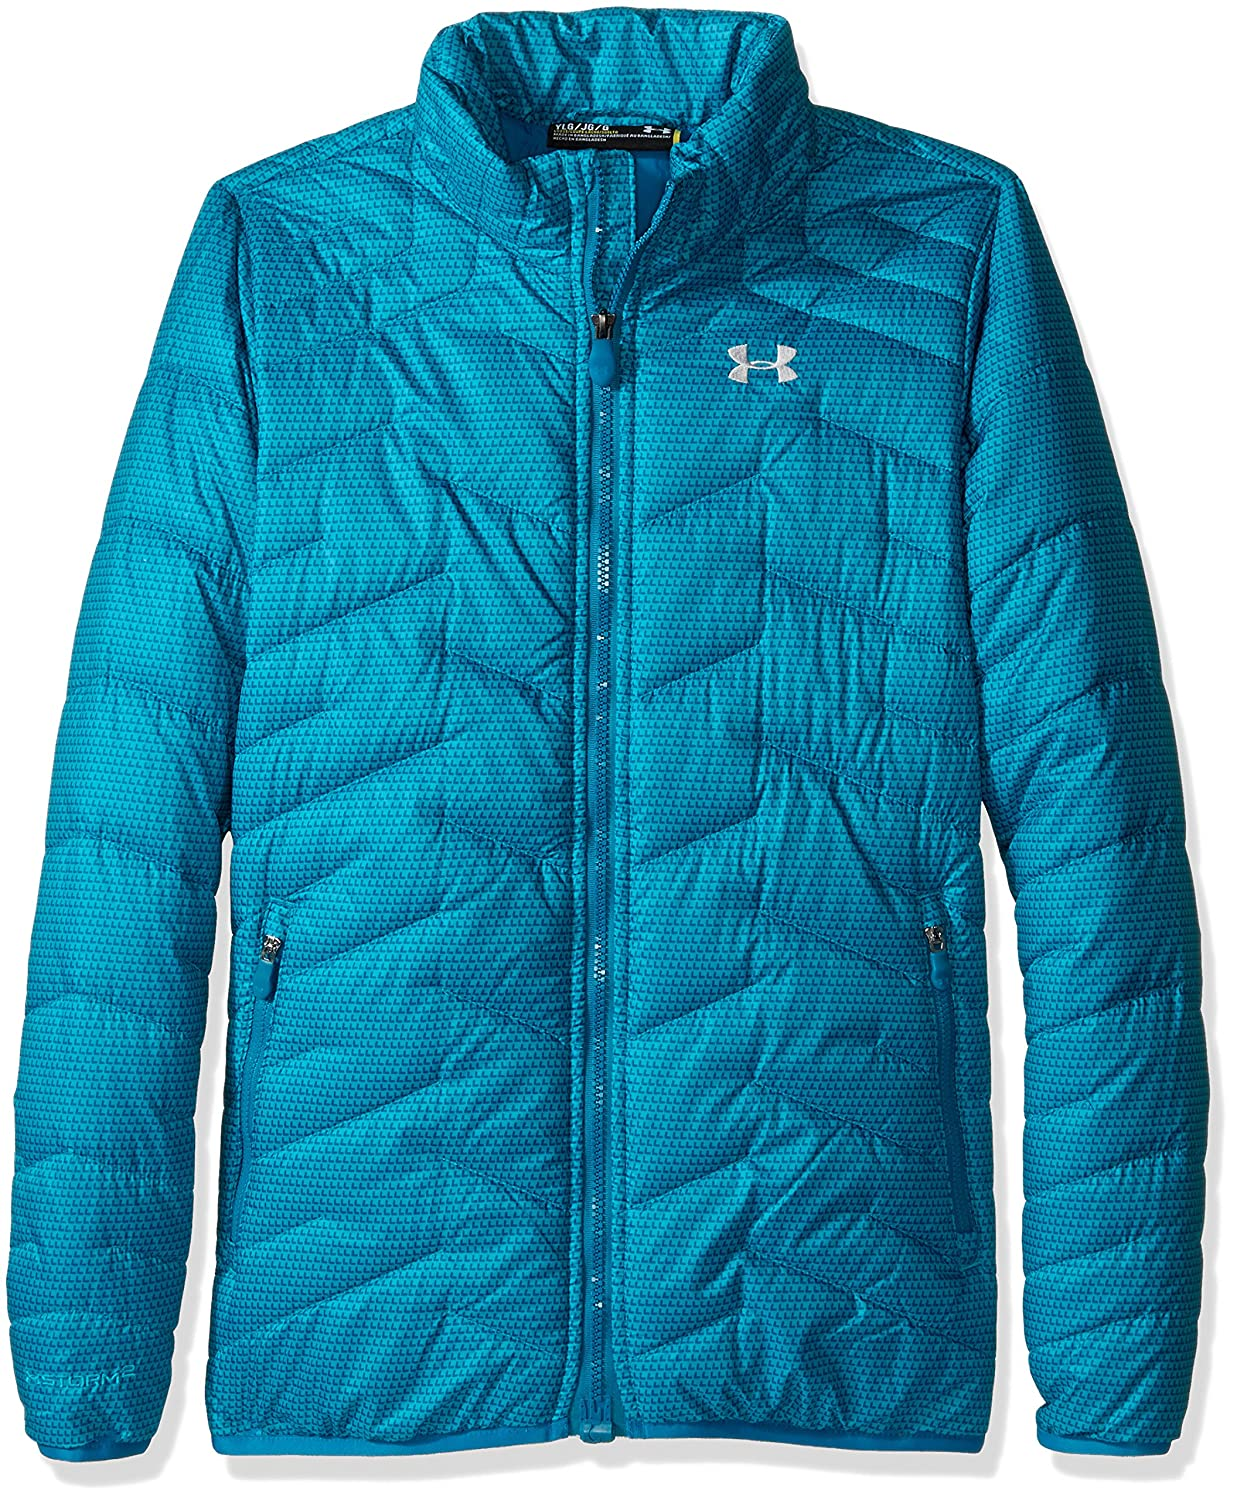 Under Armour UA ColdGear Jacket (Big Kids)